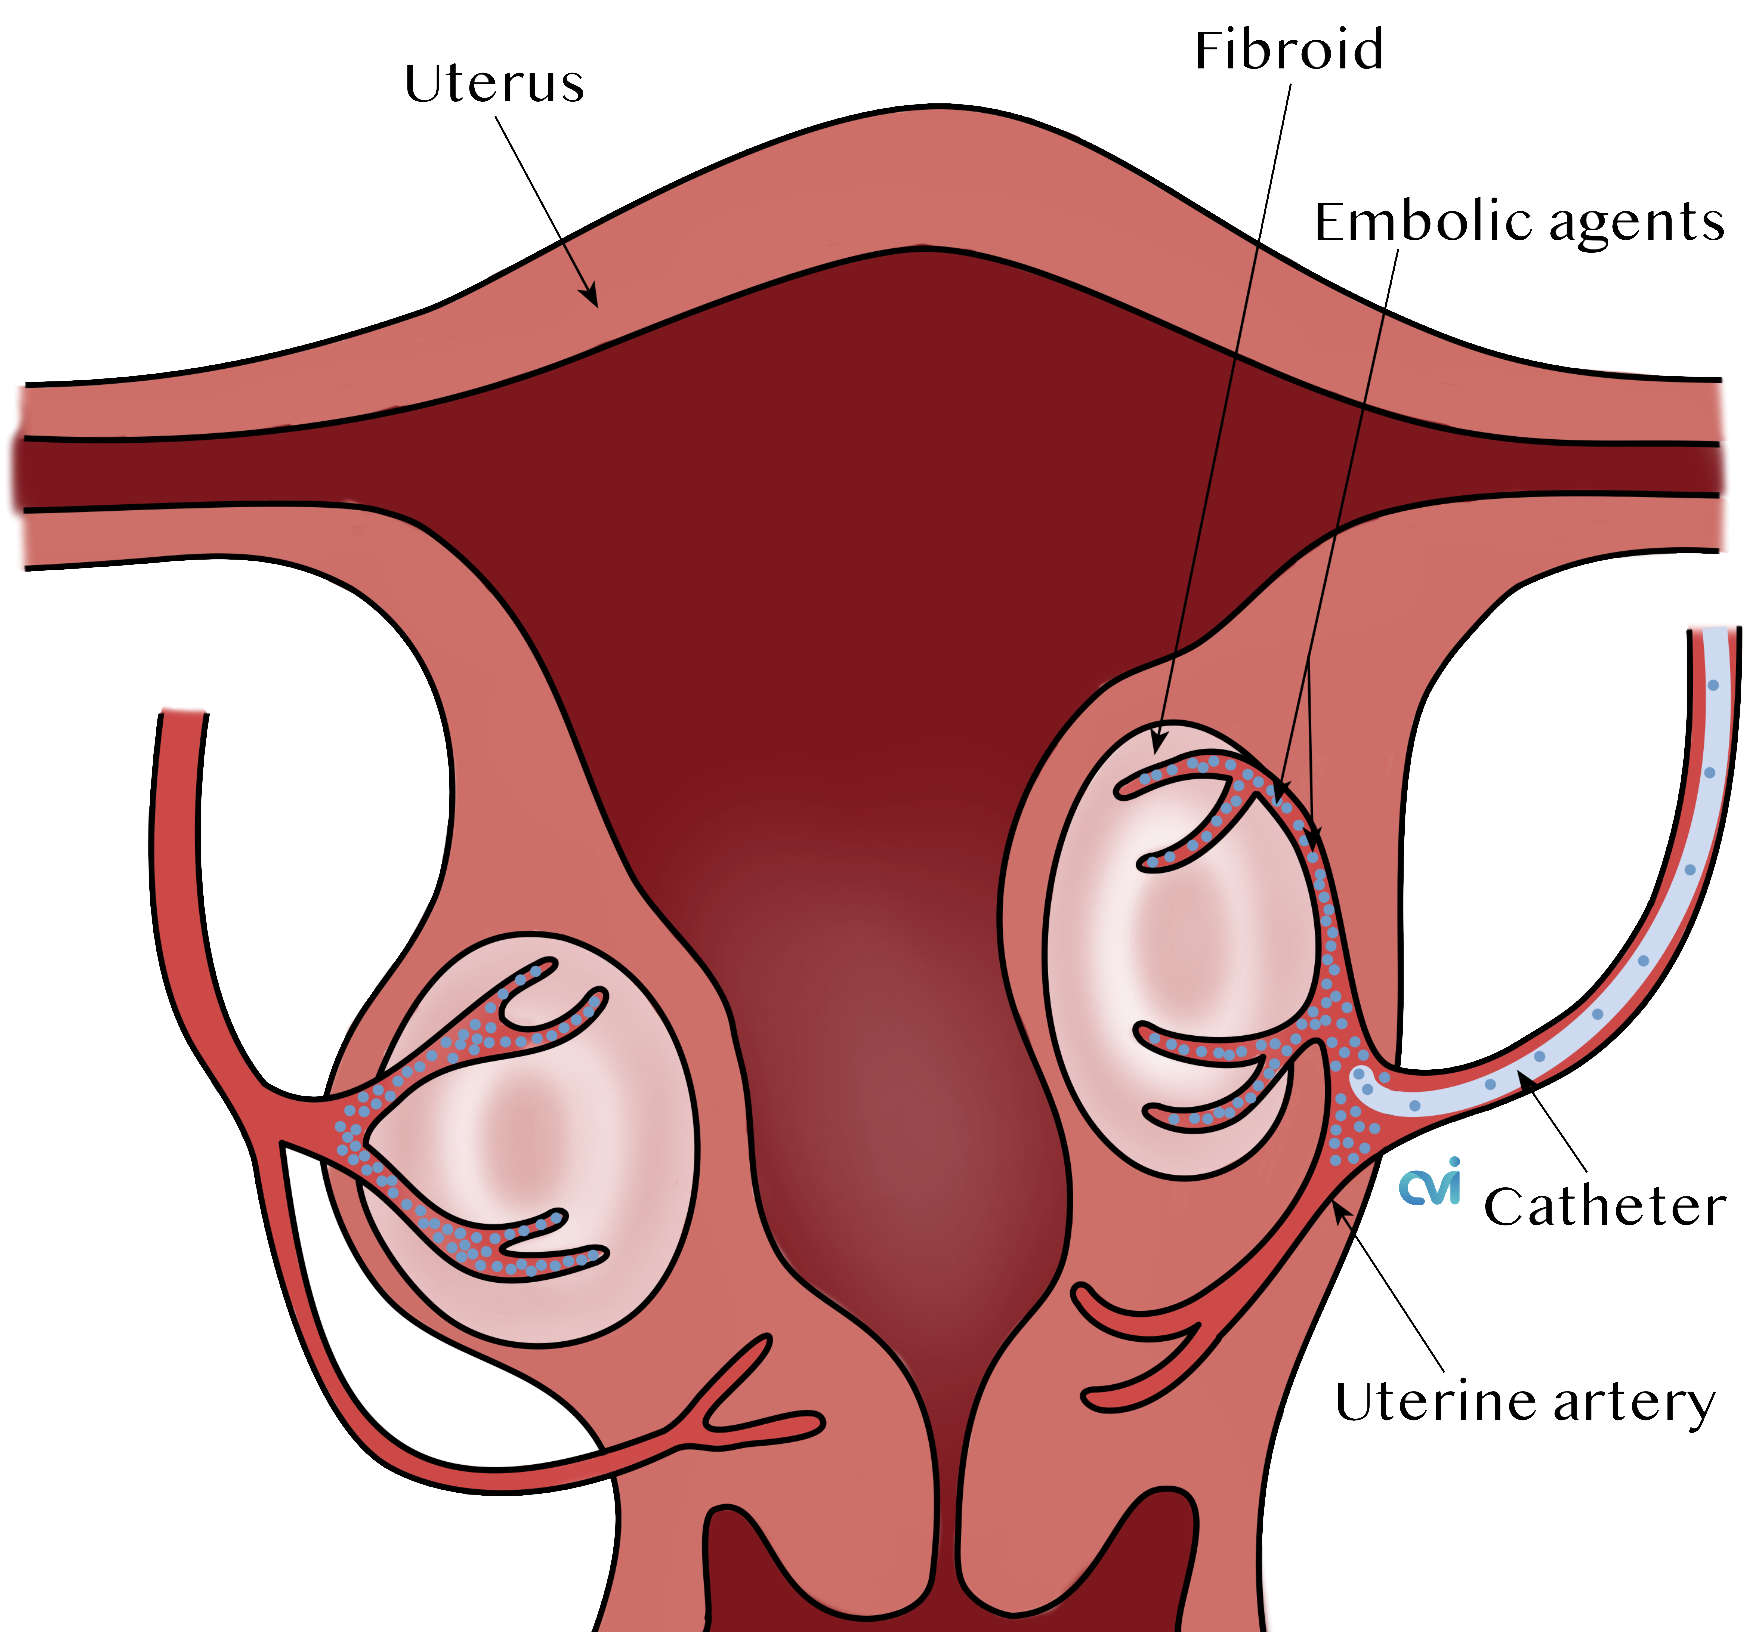 los angeles fibroid specialist embolization beads